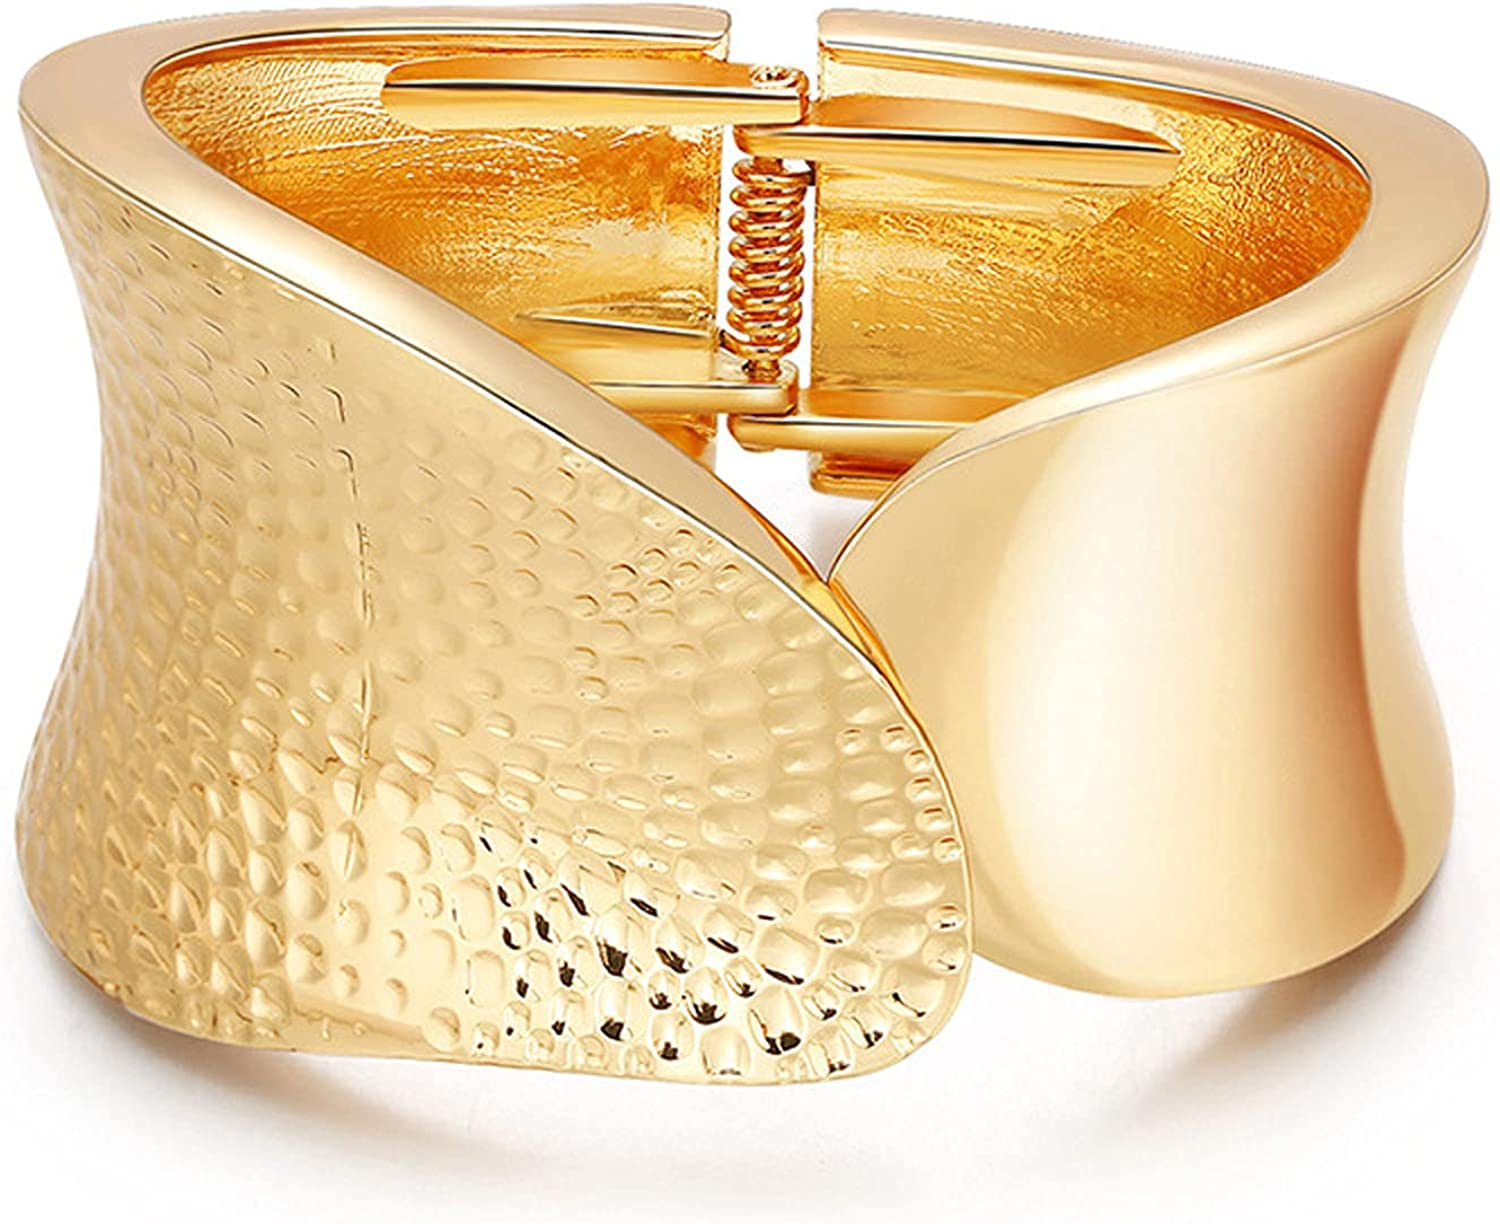 COLORFUL BLING Gold Tone Wide Chunky Bangle Bracelet for Women Polished Frosted Irregular Twist Grooved Cuff Bangle for Girls Simple Exaggerated Wrist Statement Jewelry